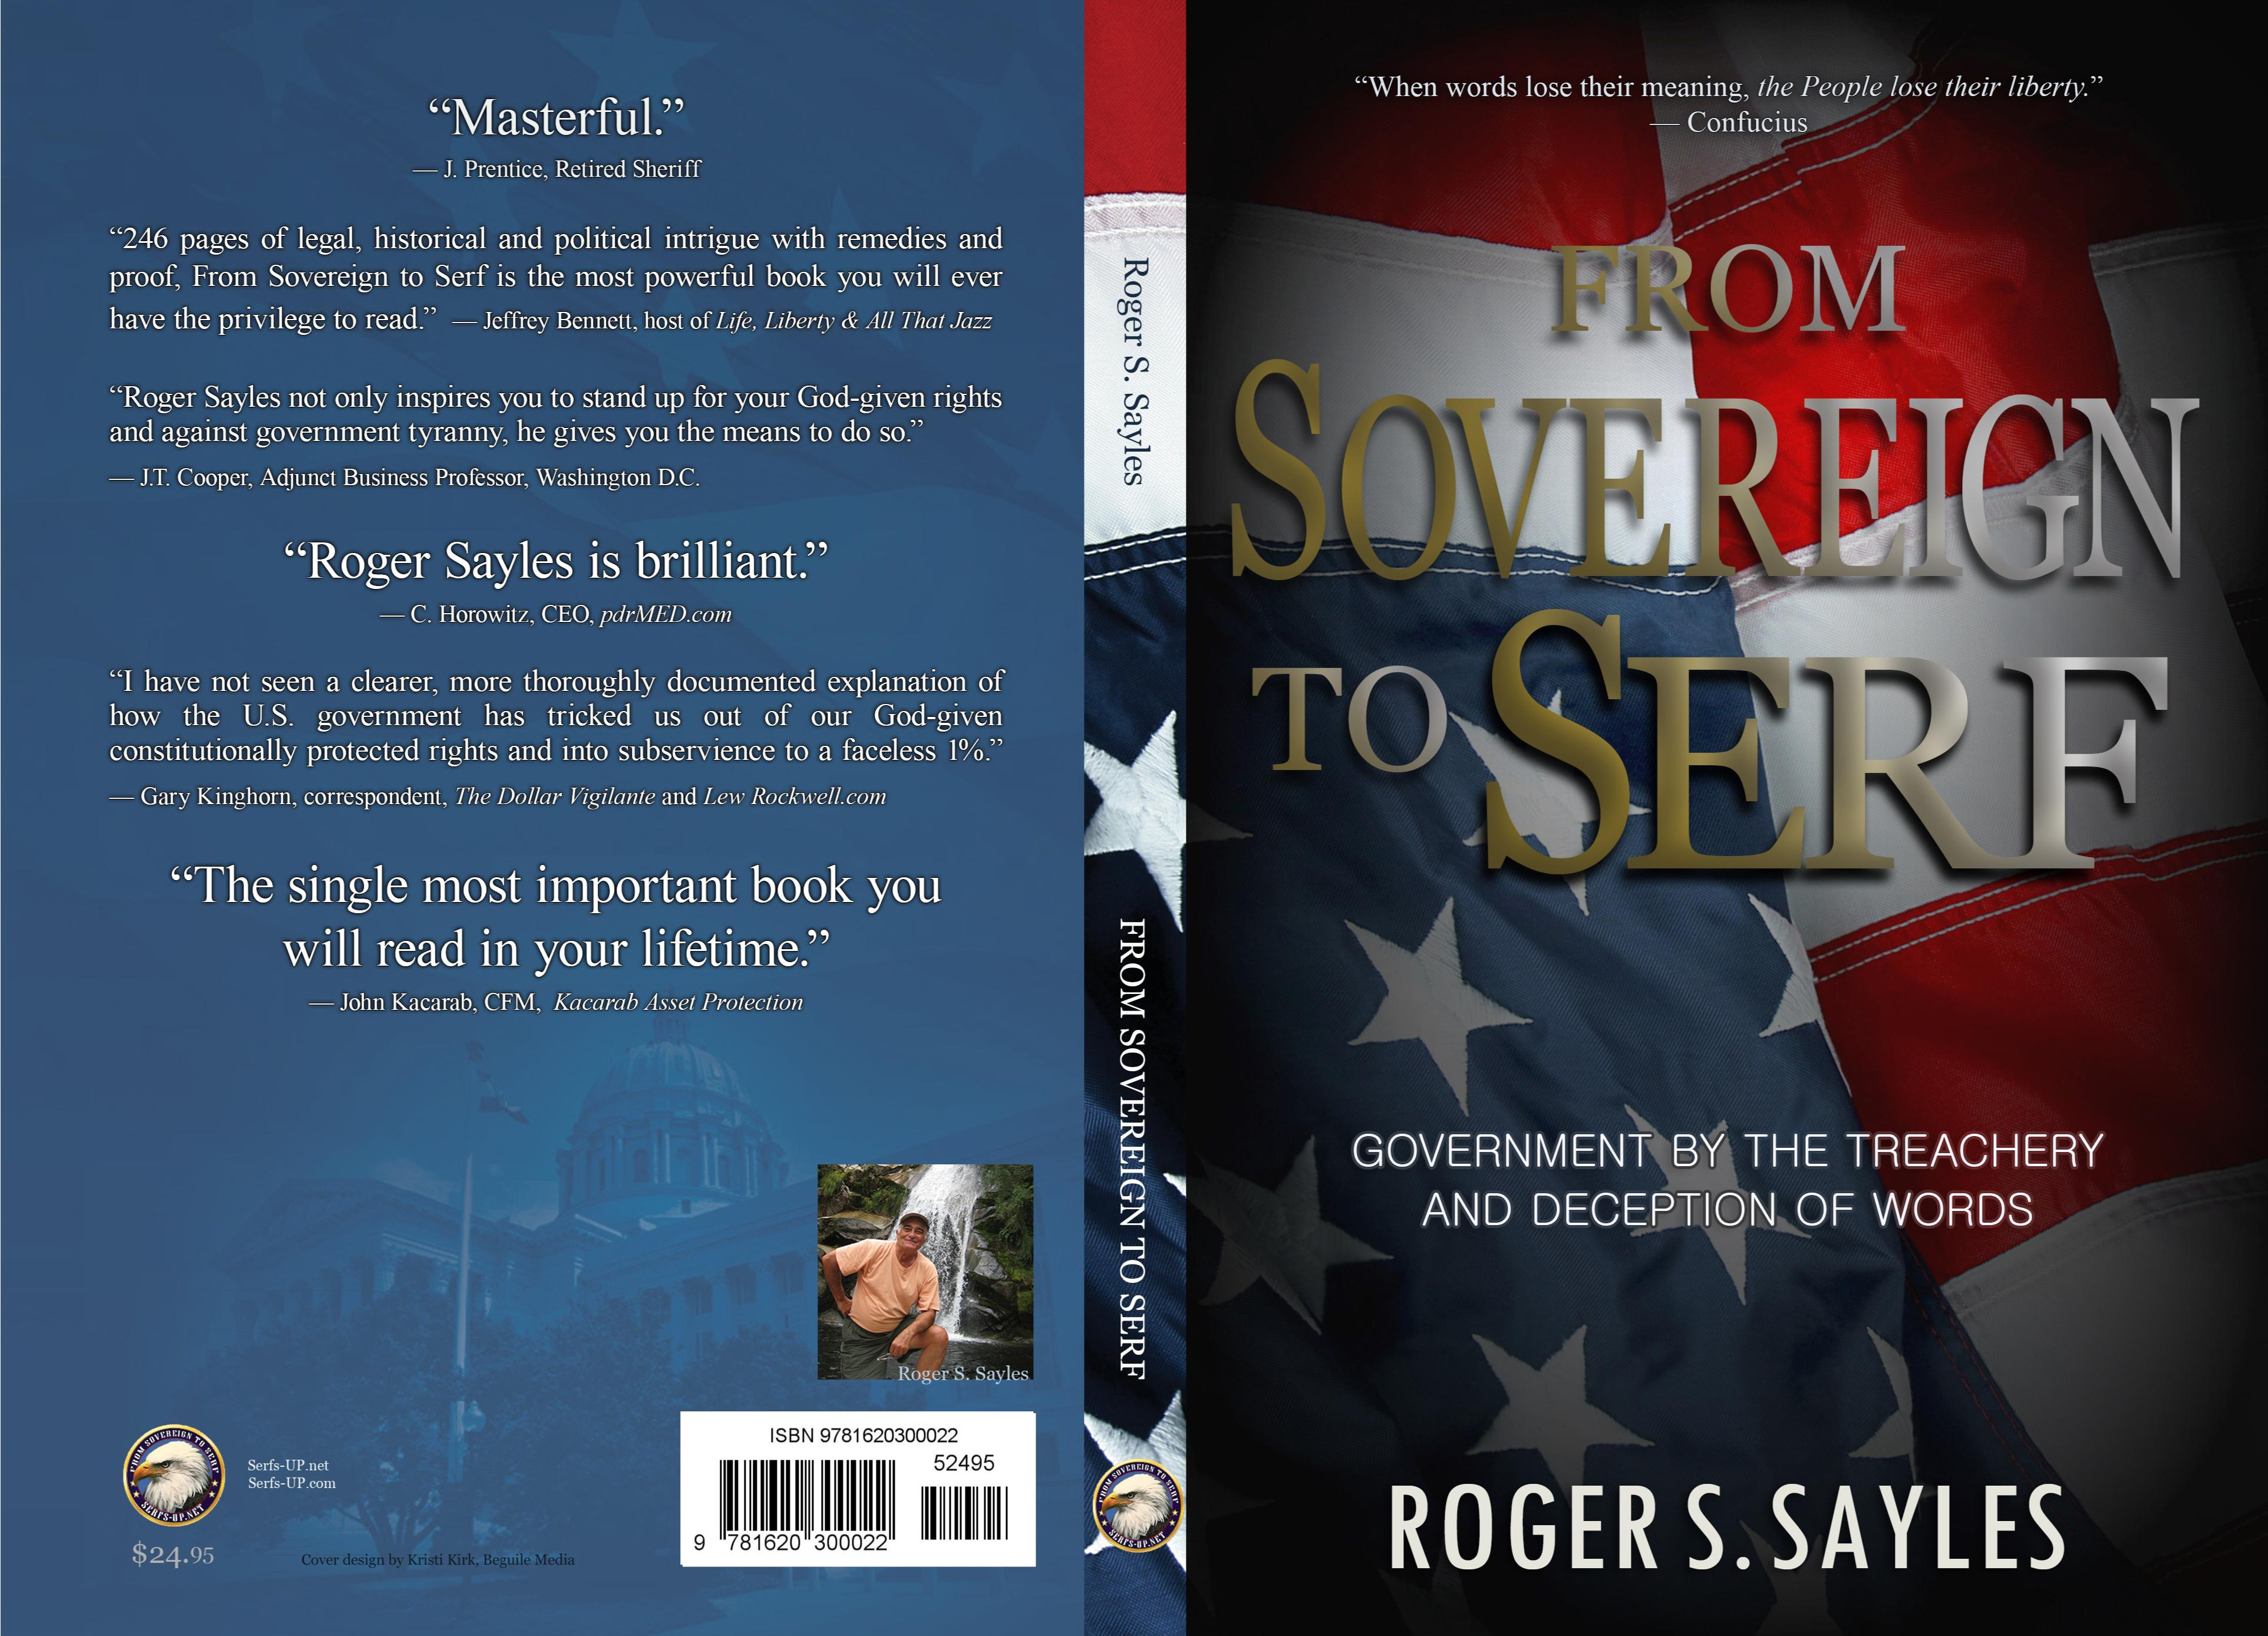 FROM SOVEREIGN TO SERF cover image